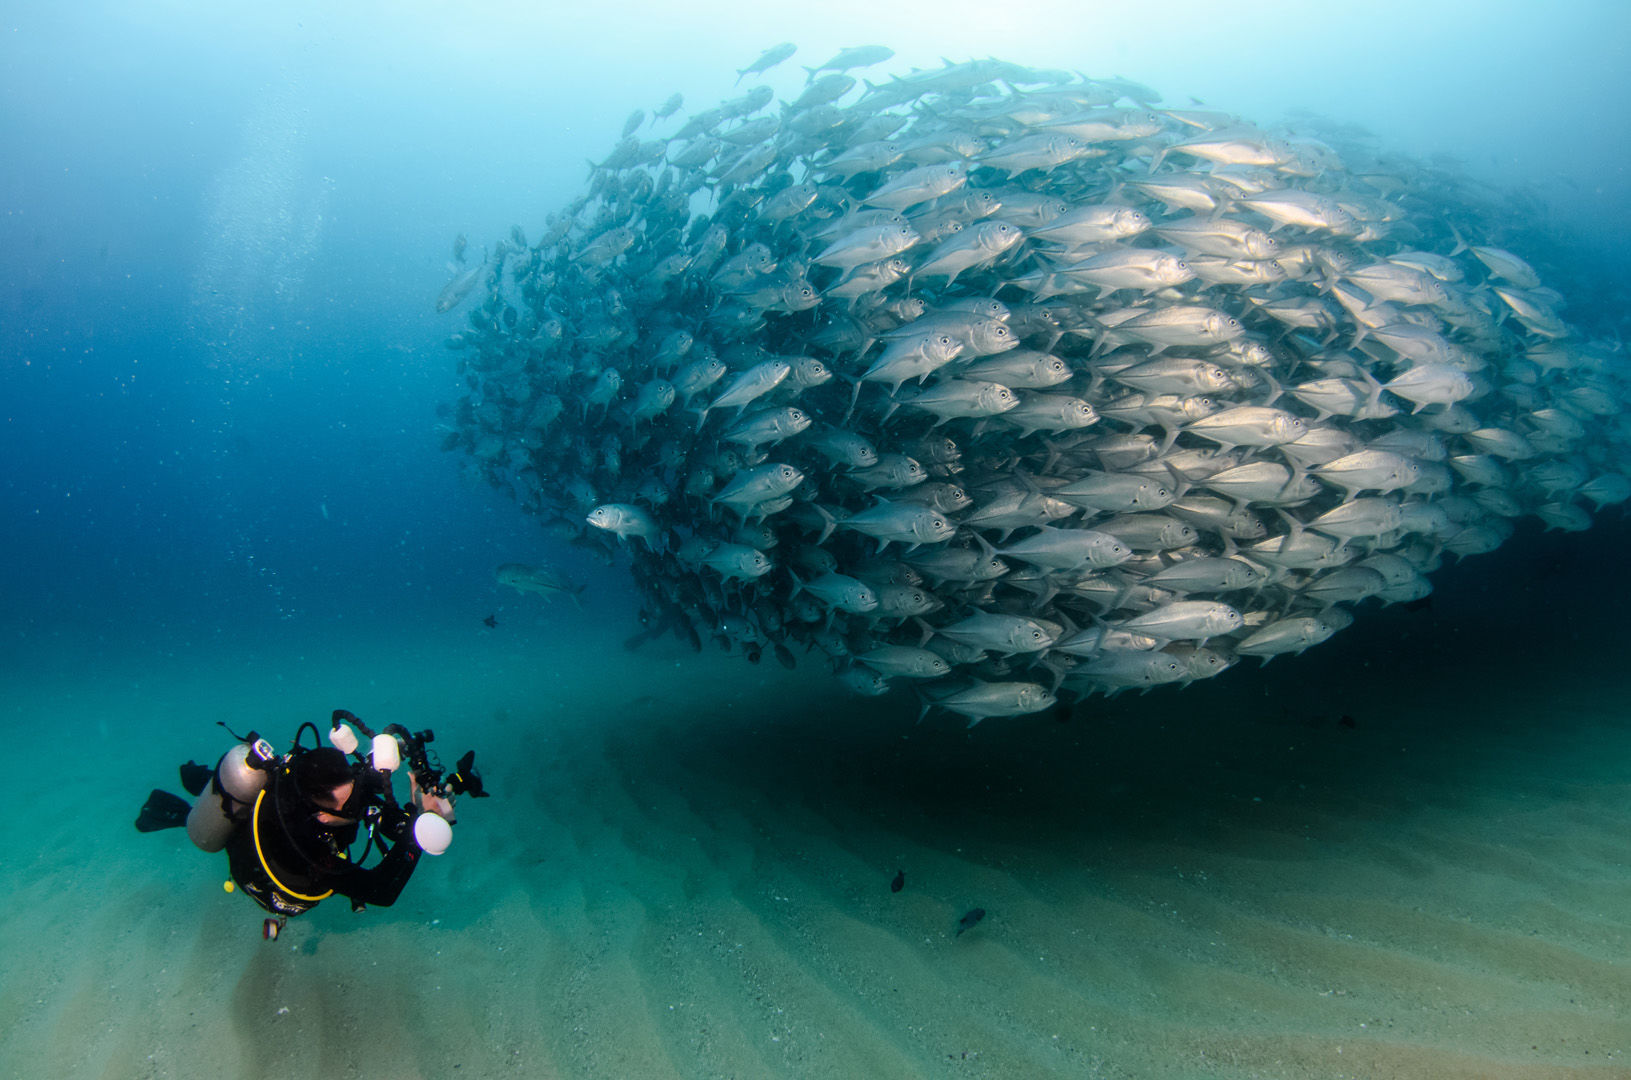 Straddling the rich waters of the Sea of Cortez, the Baja Peninsula is the launching point for some of the most electrifying where divers may be immersed in large flashing shoals of fish